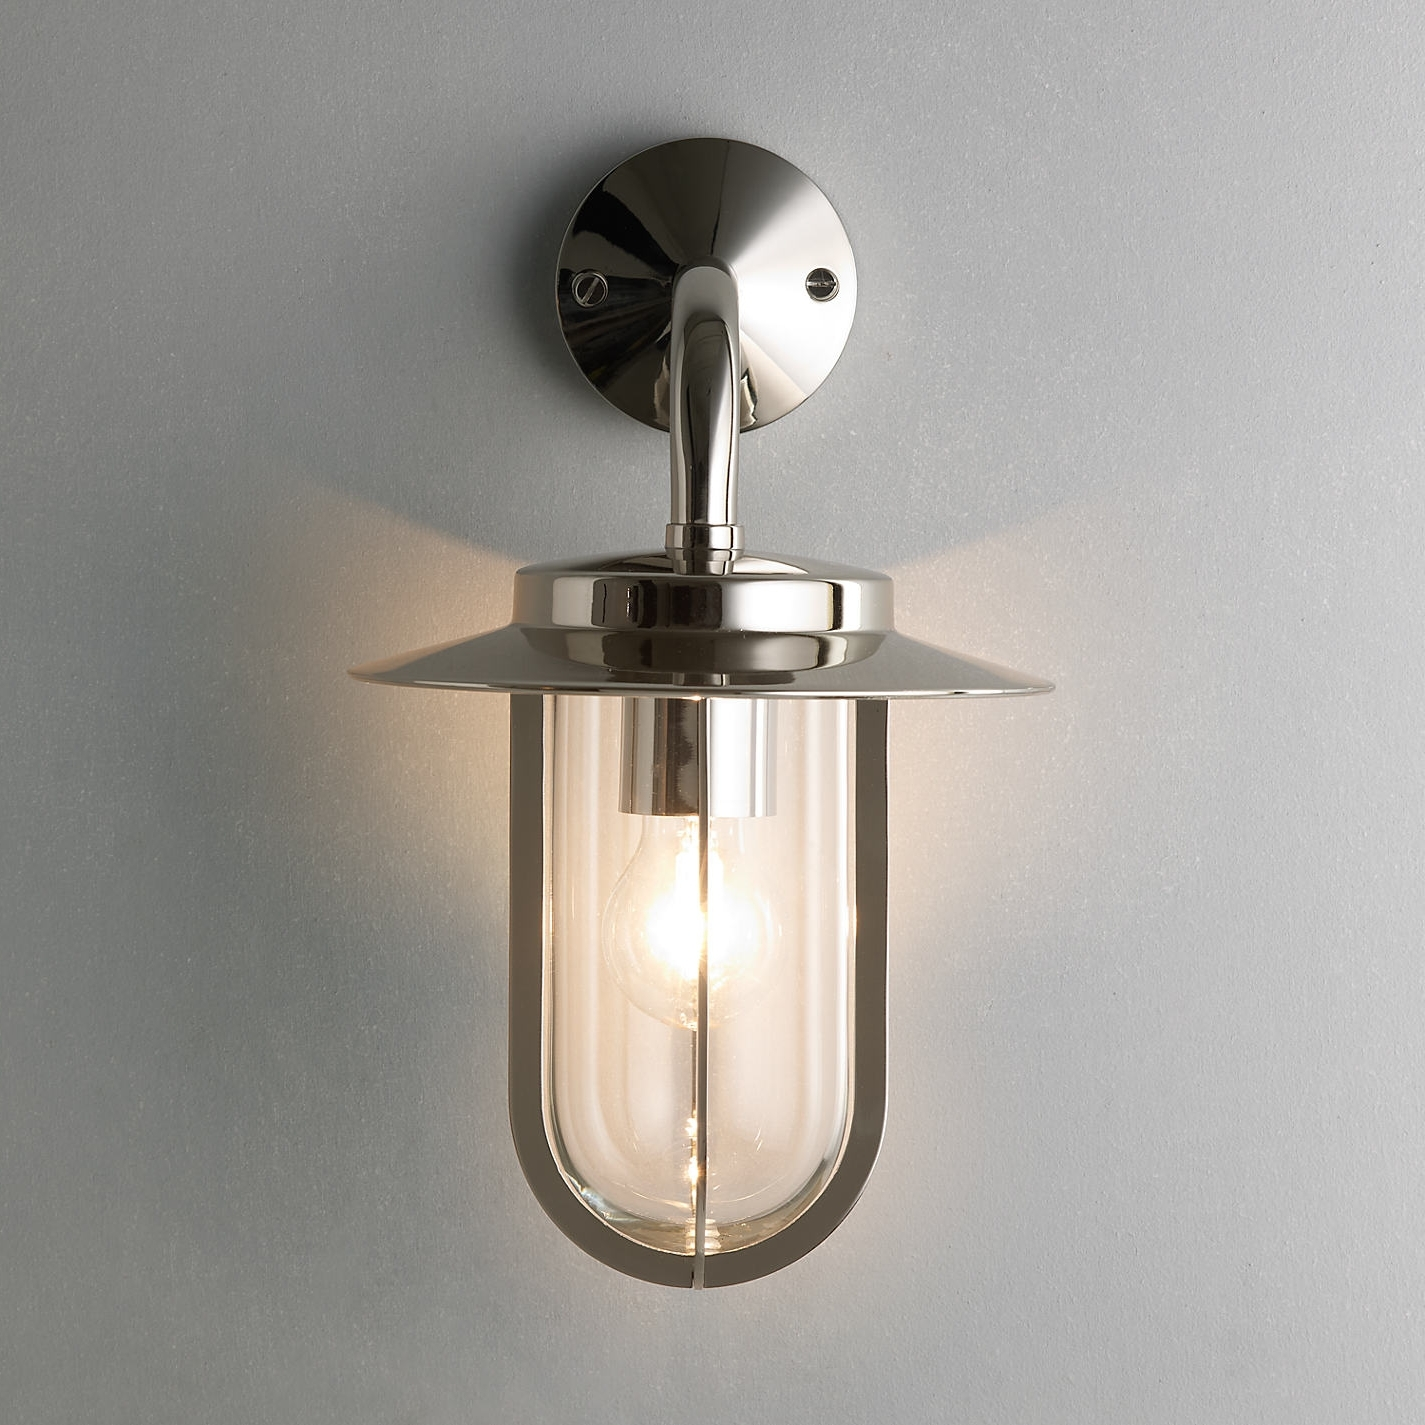 Preferred Outdoor Wall Hung Lights Intended For Wall Mounted Outdoor Lamps – Outdoor Designs (View 17 of 20)